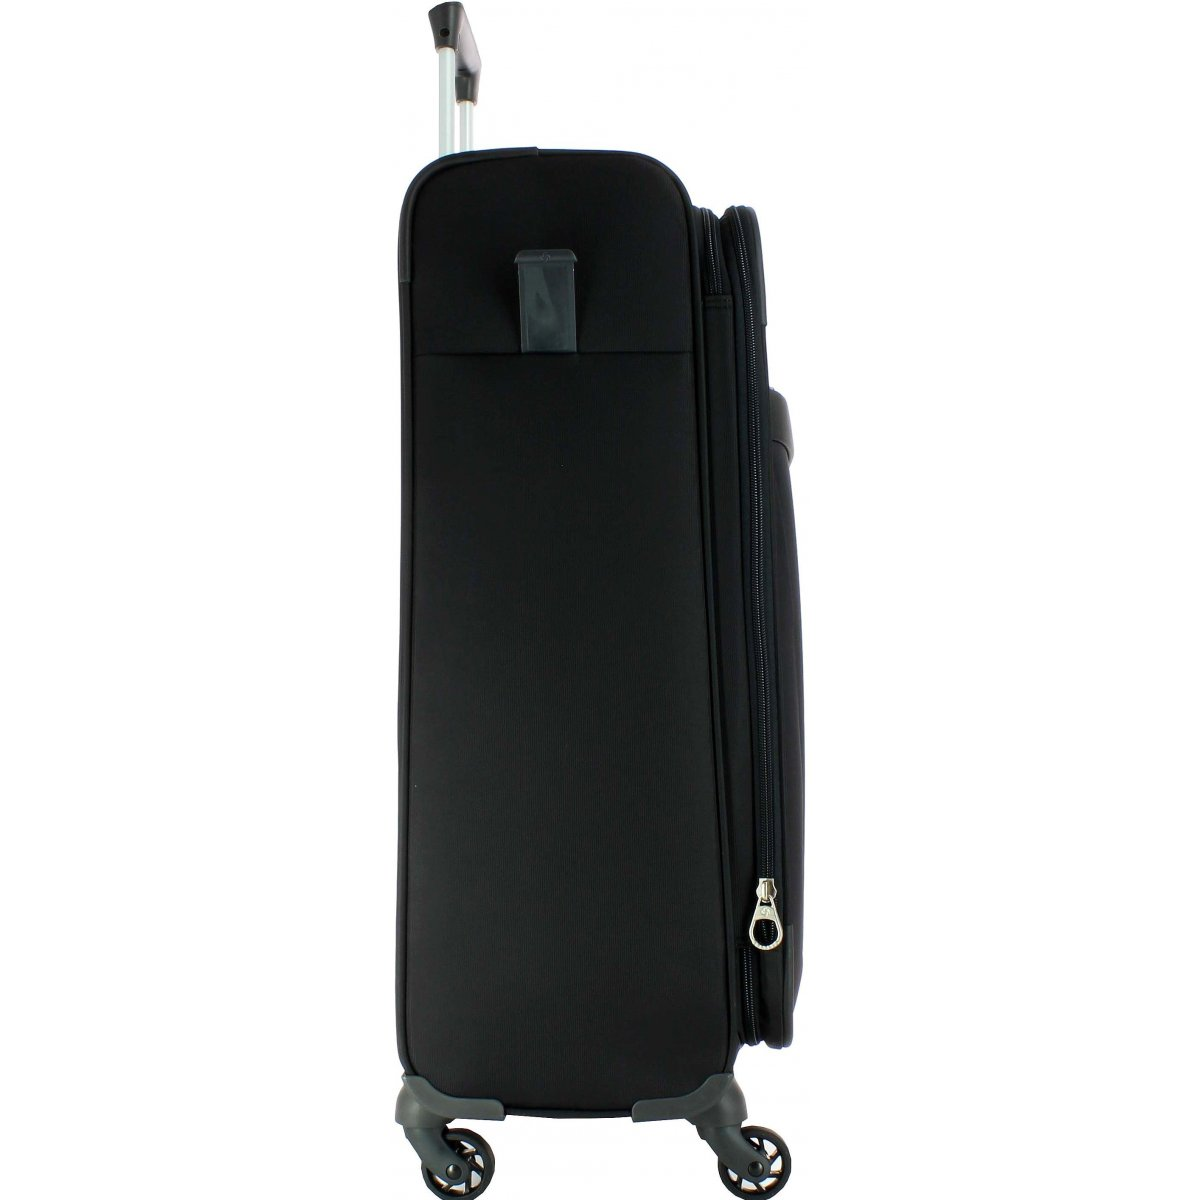 valise samsonite 4 roues good valise samsonite starwheeler spinner rigide cm roues valise avec. Black Bedroom Furniture Sets. Home Design Ideas